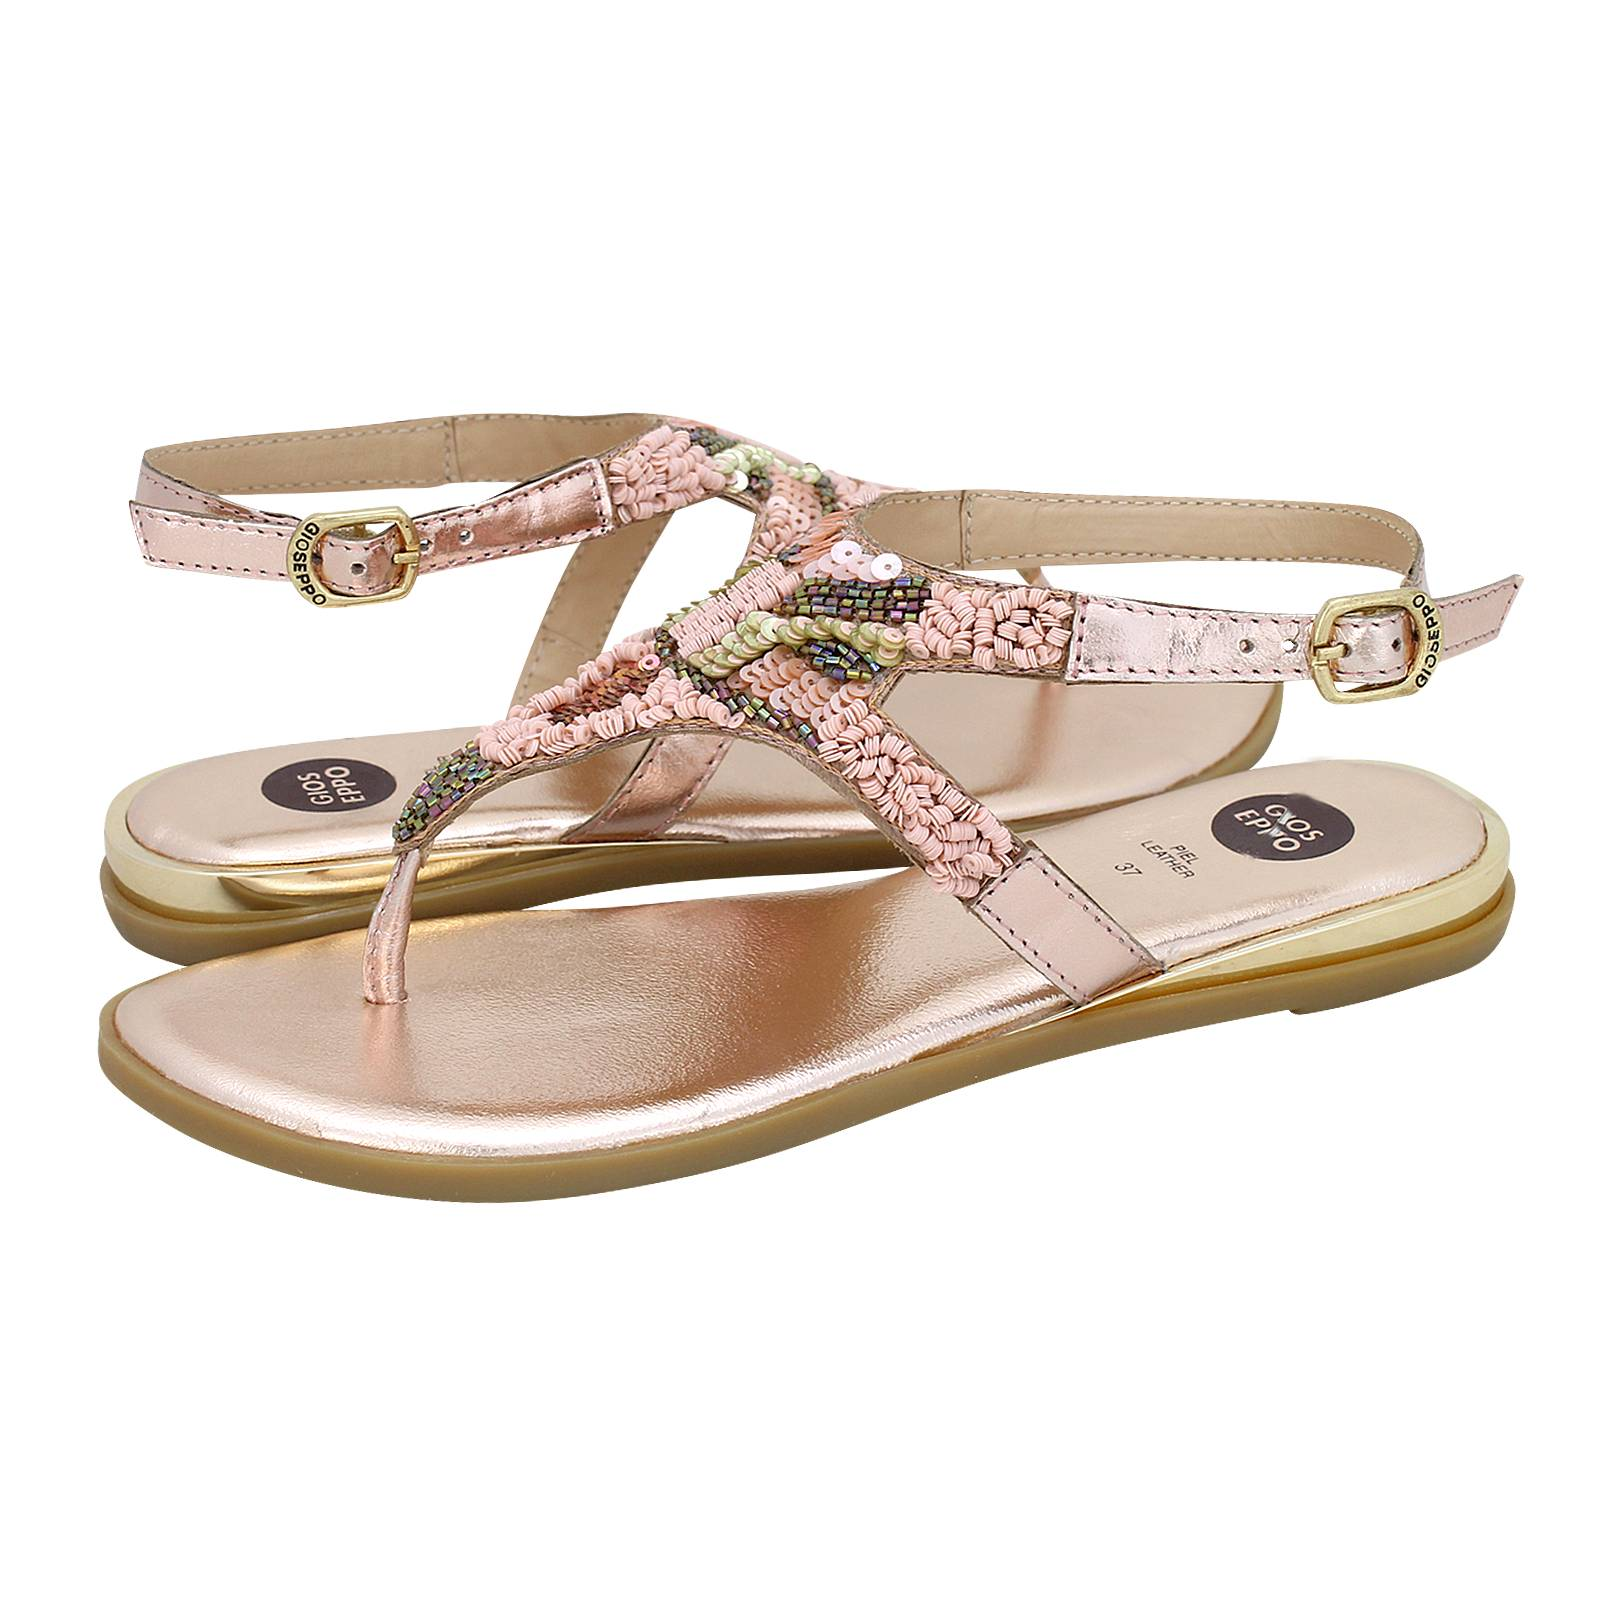 38c715dab006e4 Niedzwiady - Gioseppo Women s flat sandals made of leather and ...